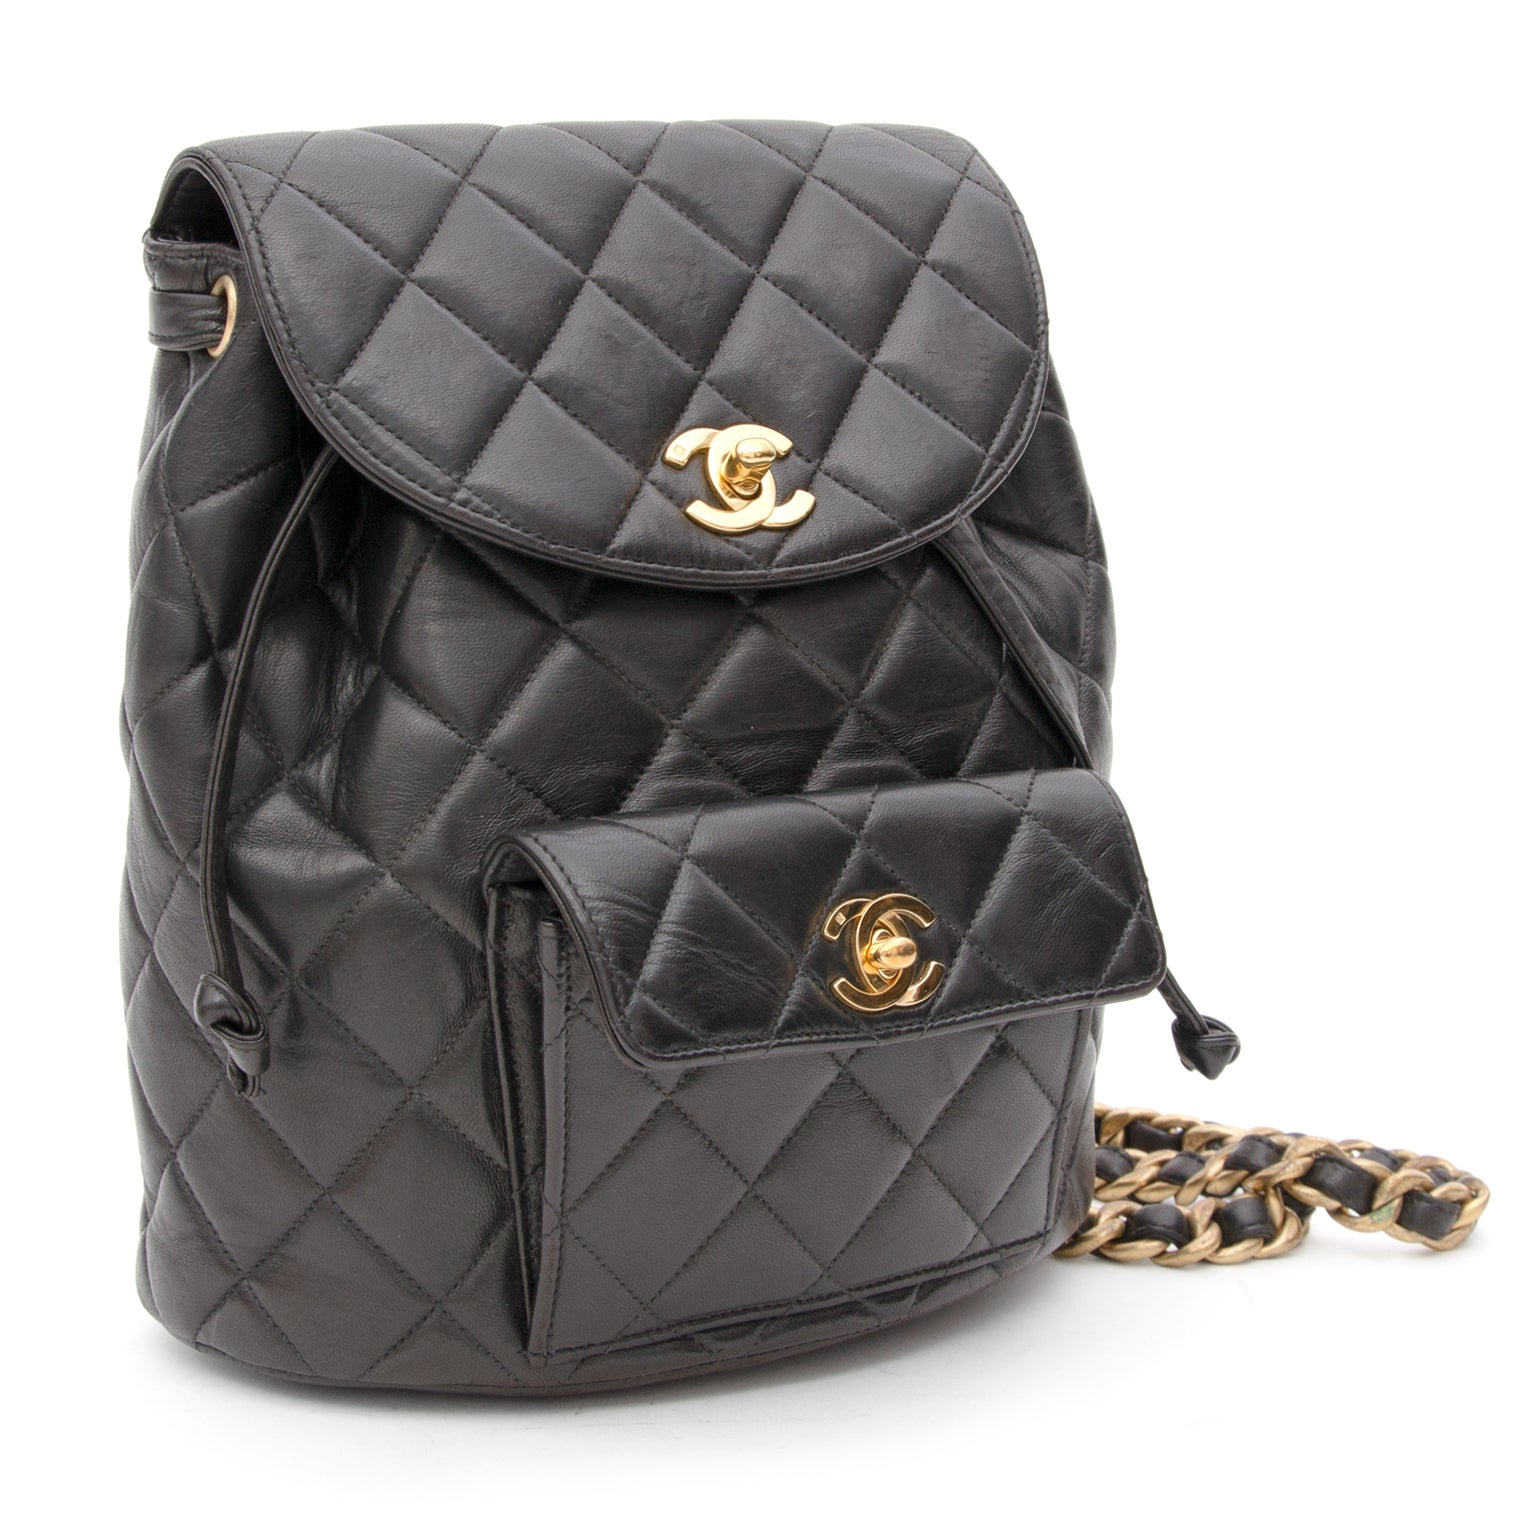 401ea706be73 Chanel Black Quilted Leather Backpack at 1stdibs